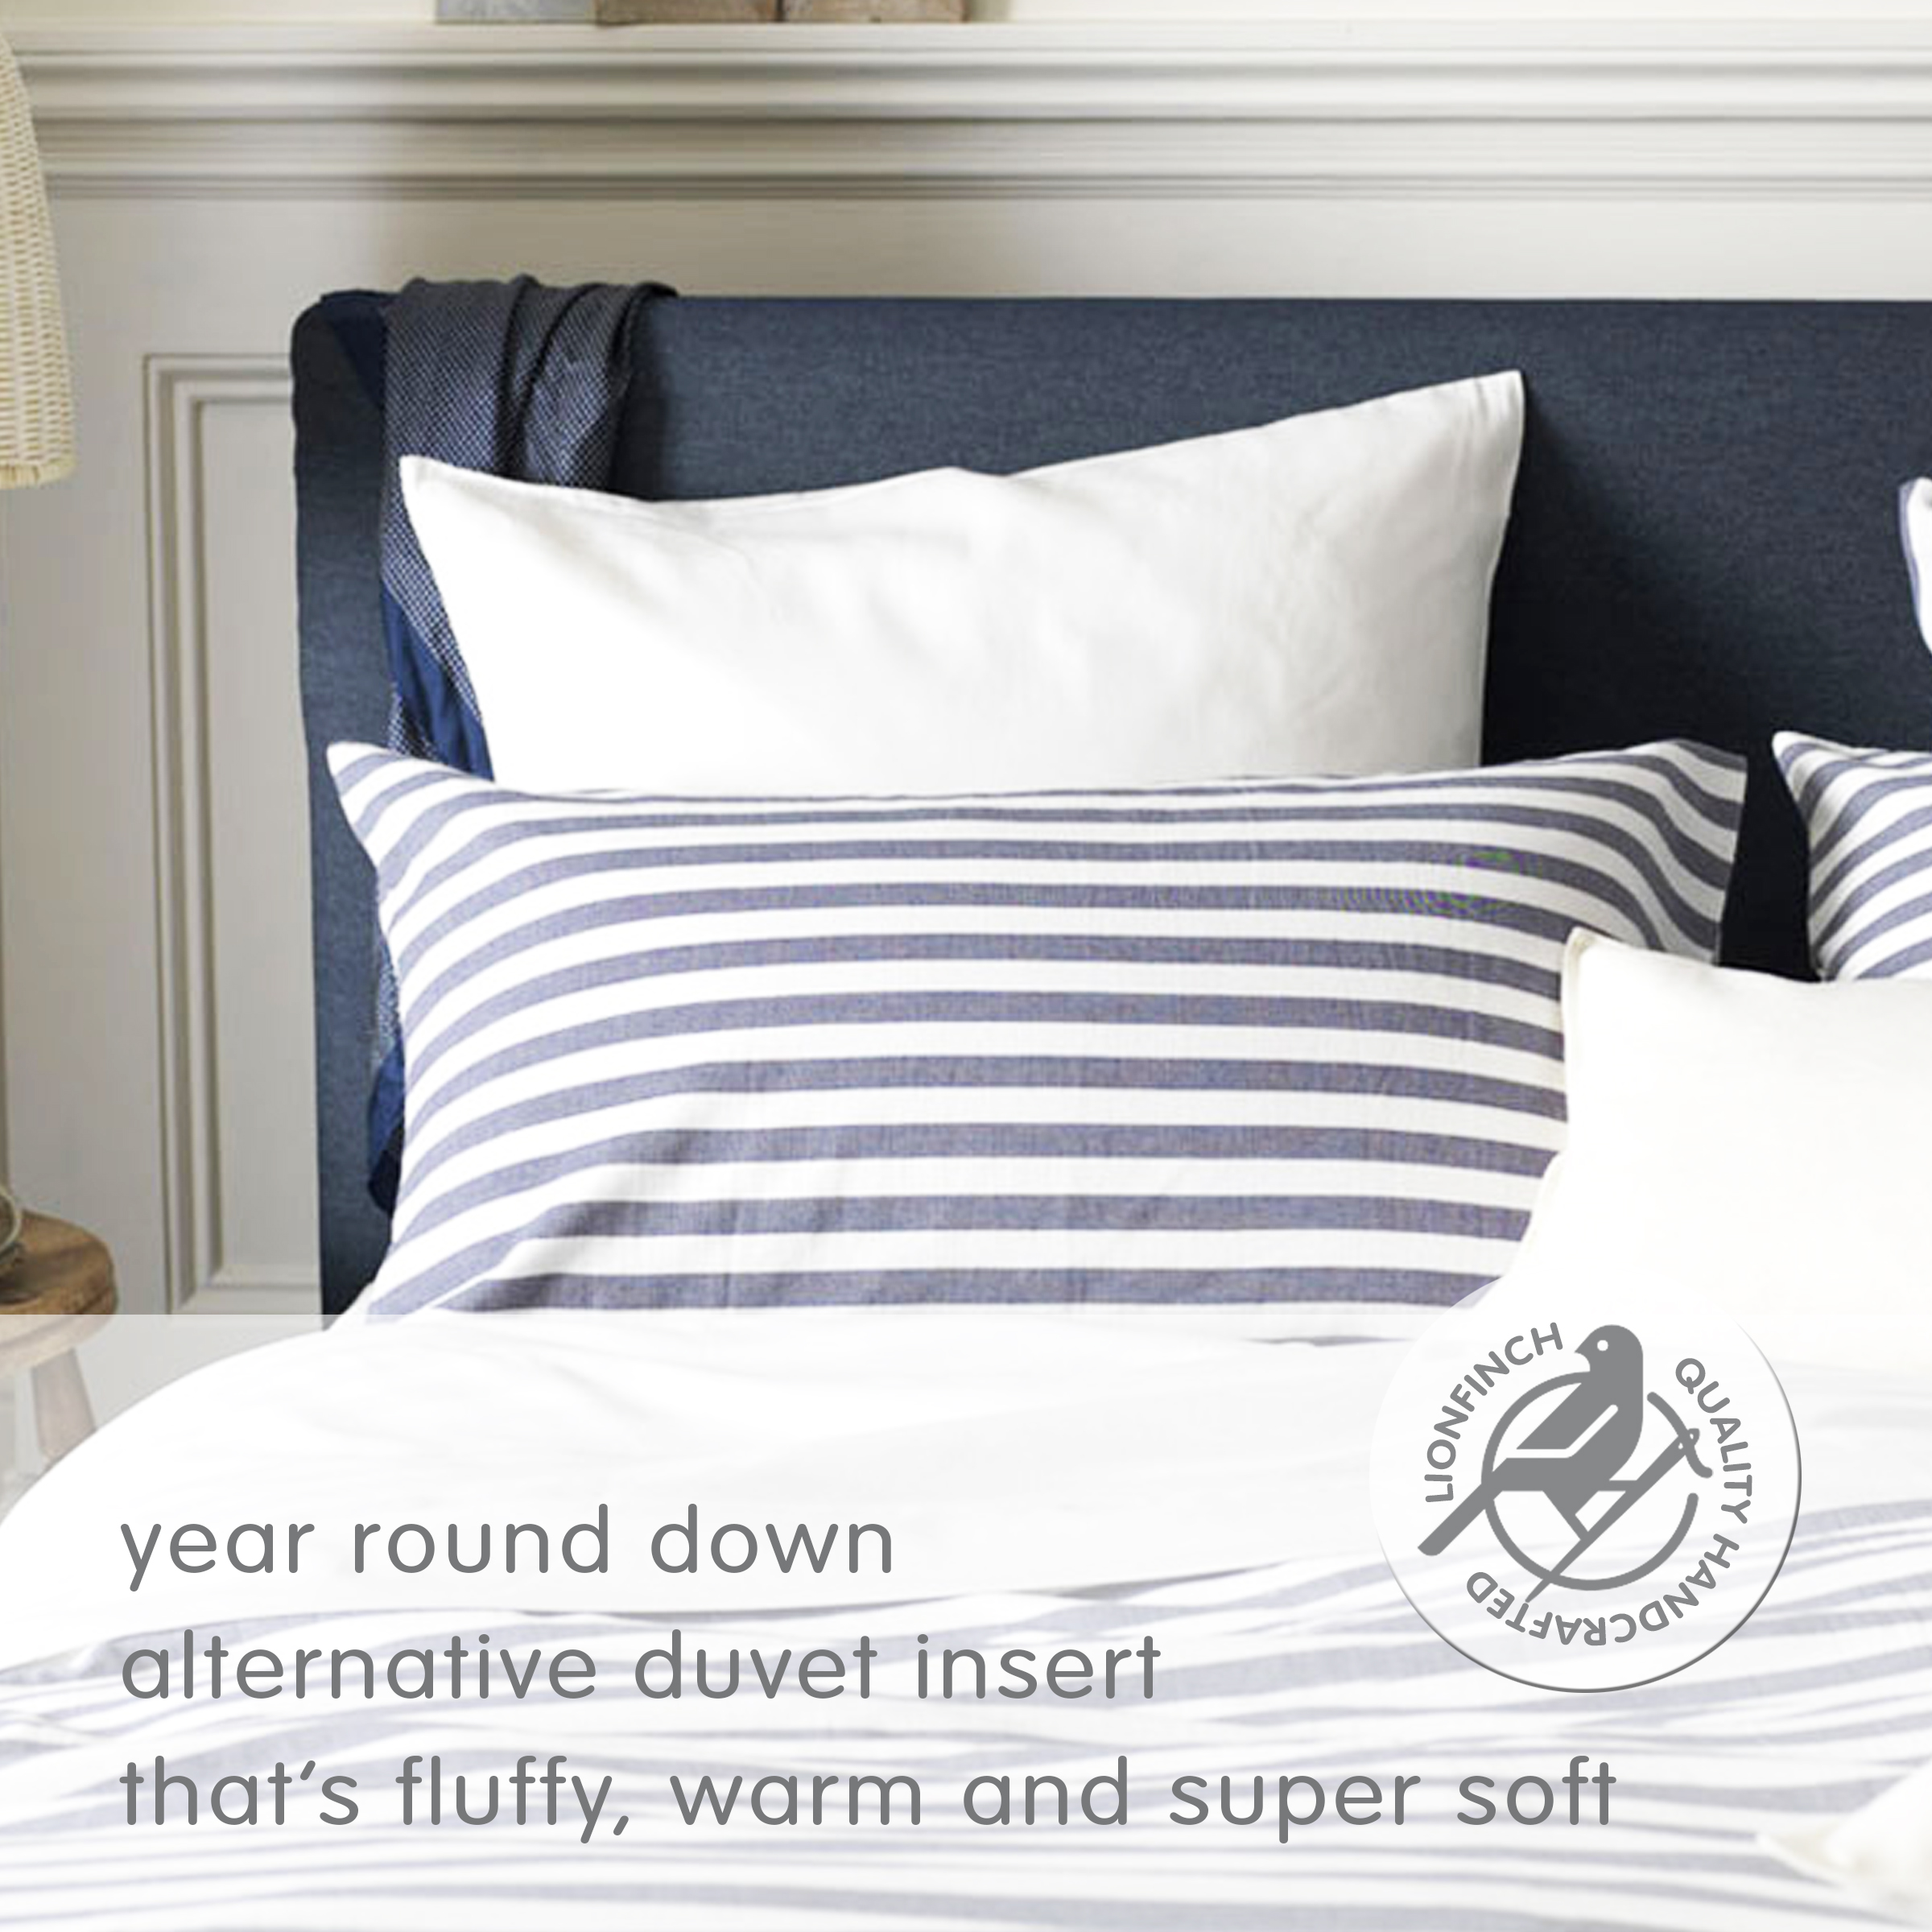 Duvet Insert Or Comforter Arctic White All Seasons Alternative Goose Down Comforter Filled With Allergy Free Super Plush Poly Fiber Easy To Wash And Dry 100 Hypoallergenic Duvet Lionfinch Specializing In